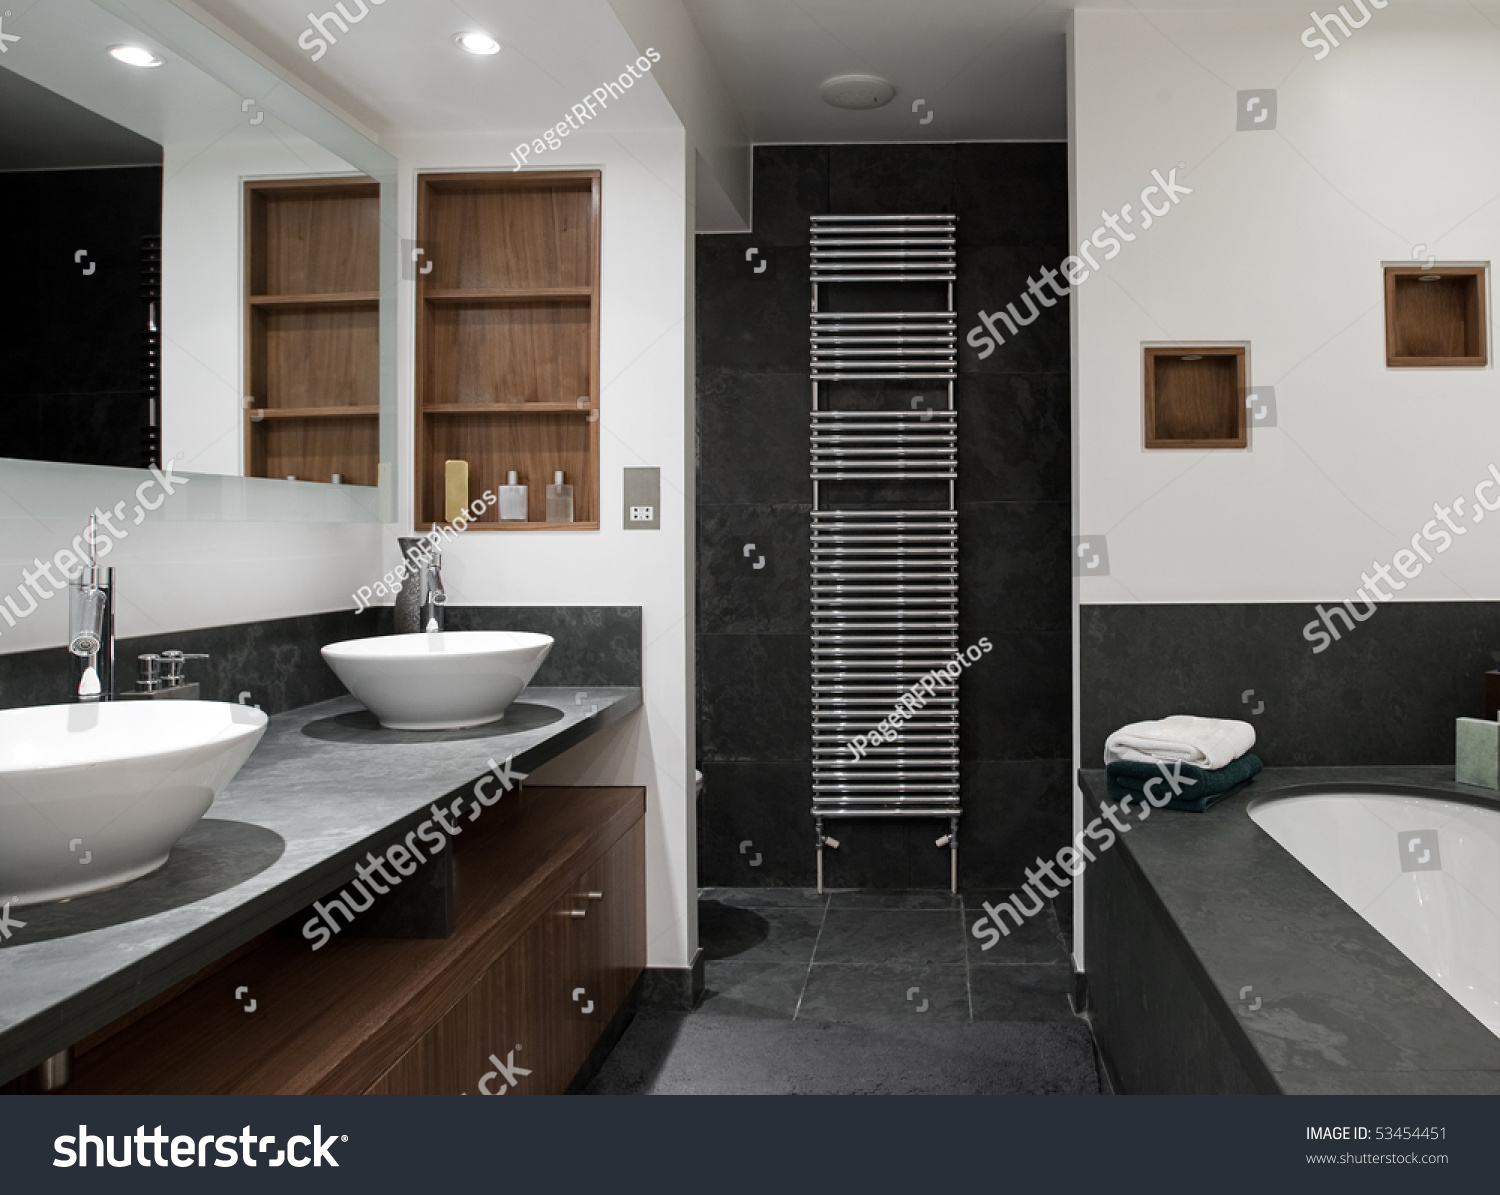 Interior Shot A Luxury Bathroom With His And Hers Sinks